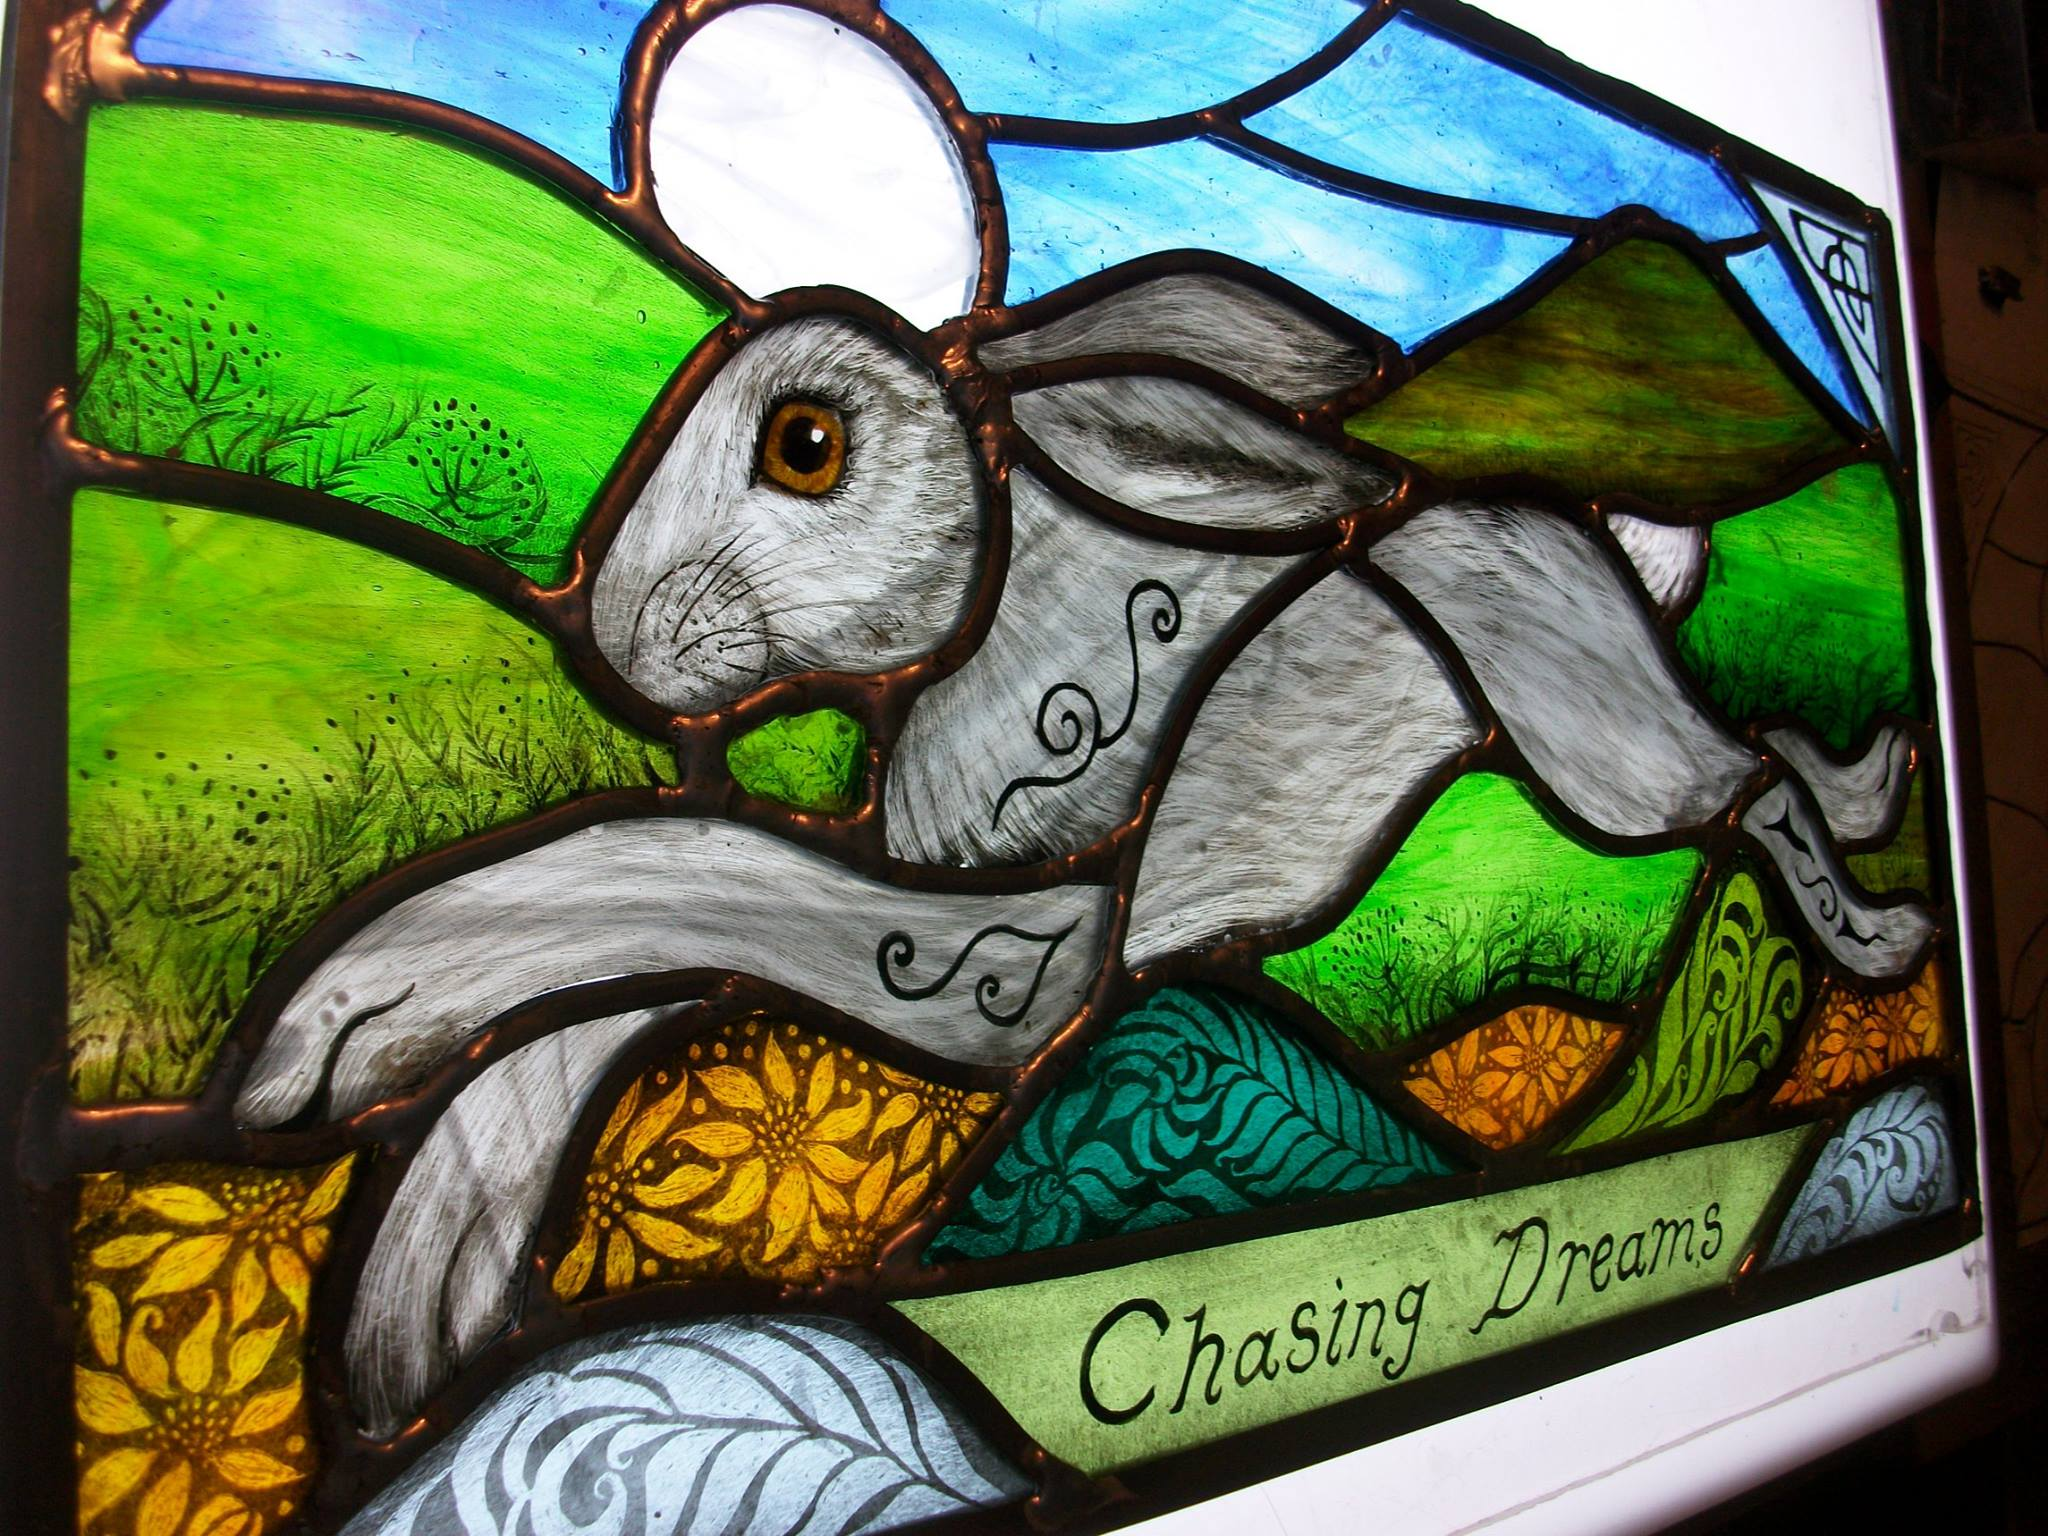 chasing dreams stained glass